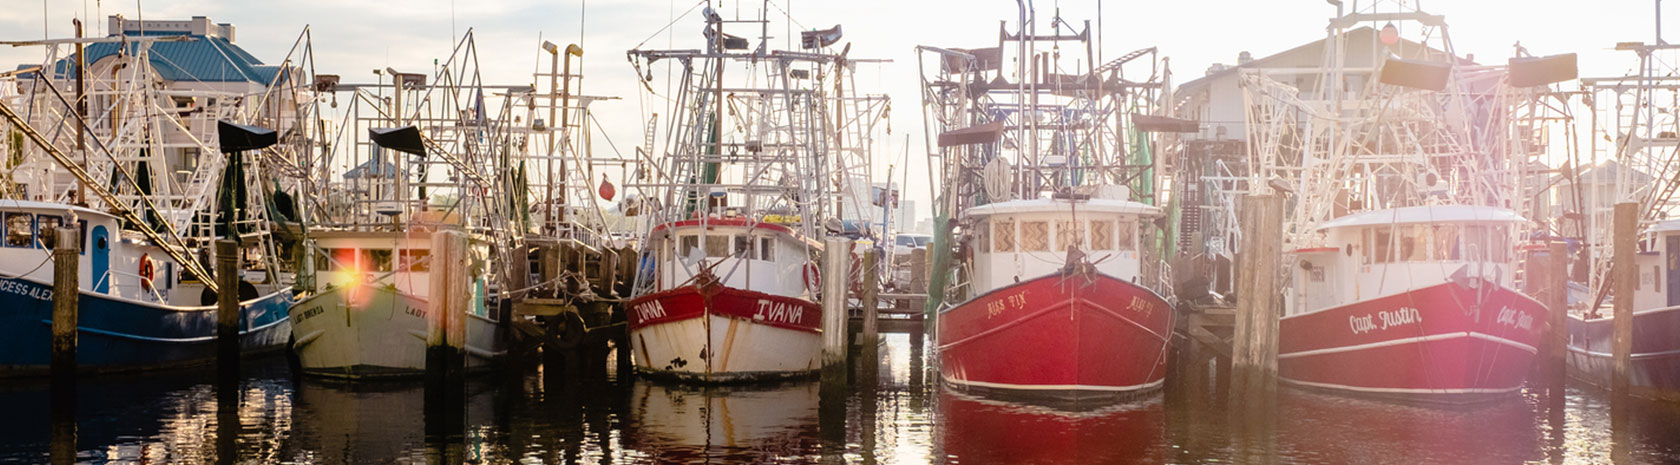 A string of fishing boats docked side by side just hours before sunset